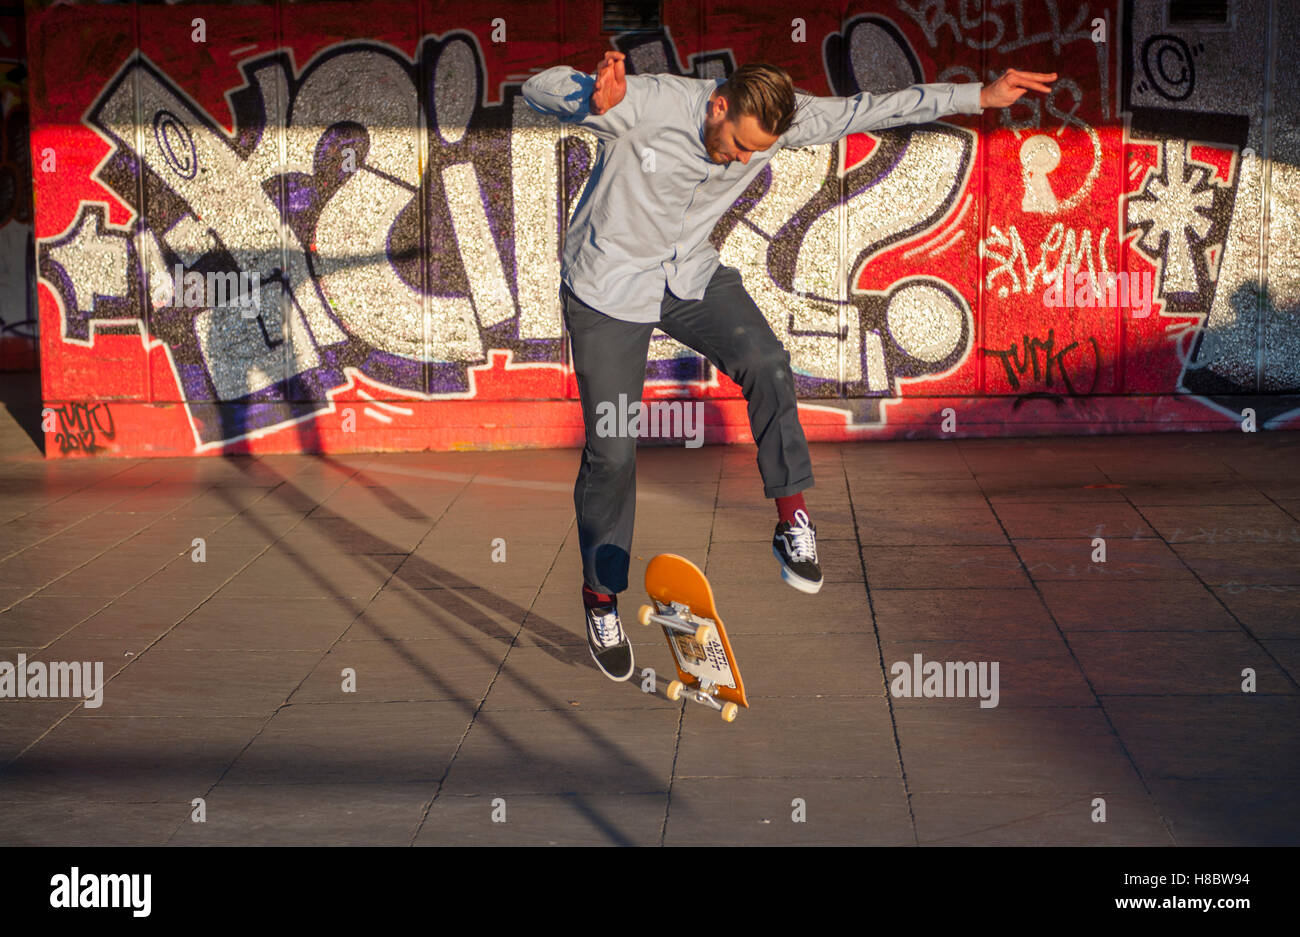 Skateboarder at the skate board park under the national theater, on London's southbank - Stock Image